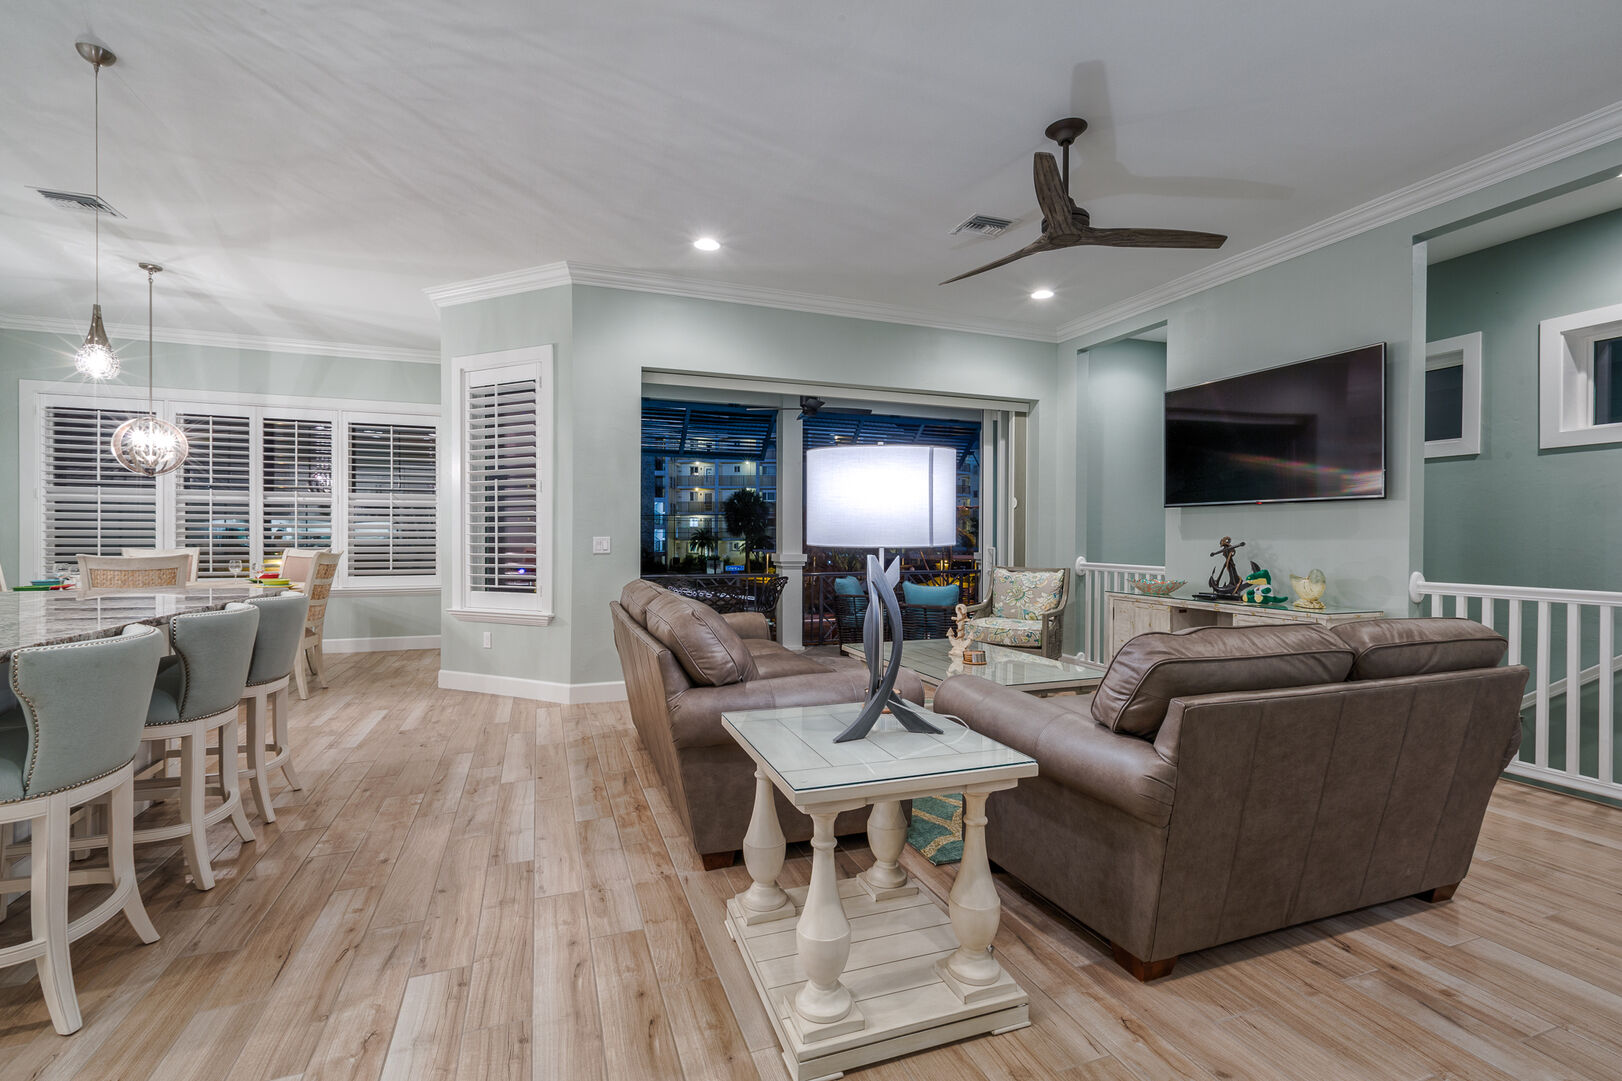 Living area with ample seating and wall-mounted TV, all in front of a large glass door.